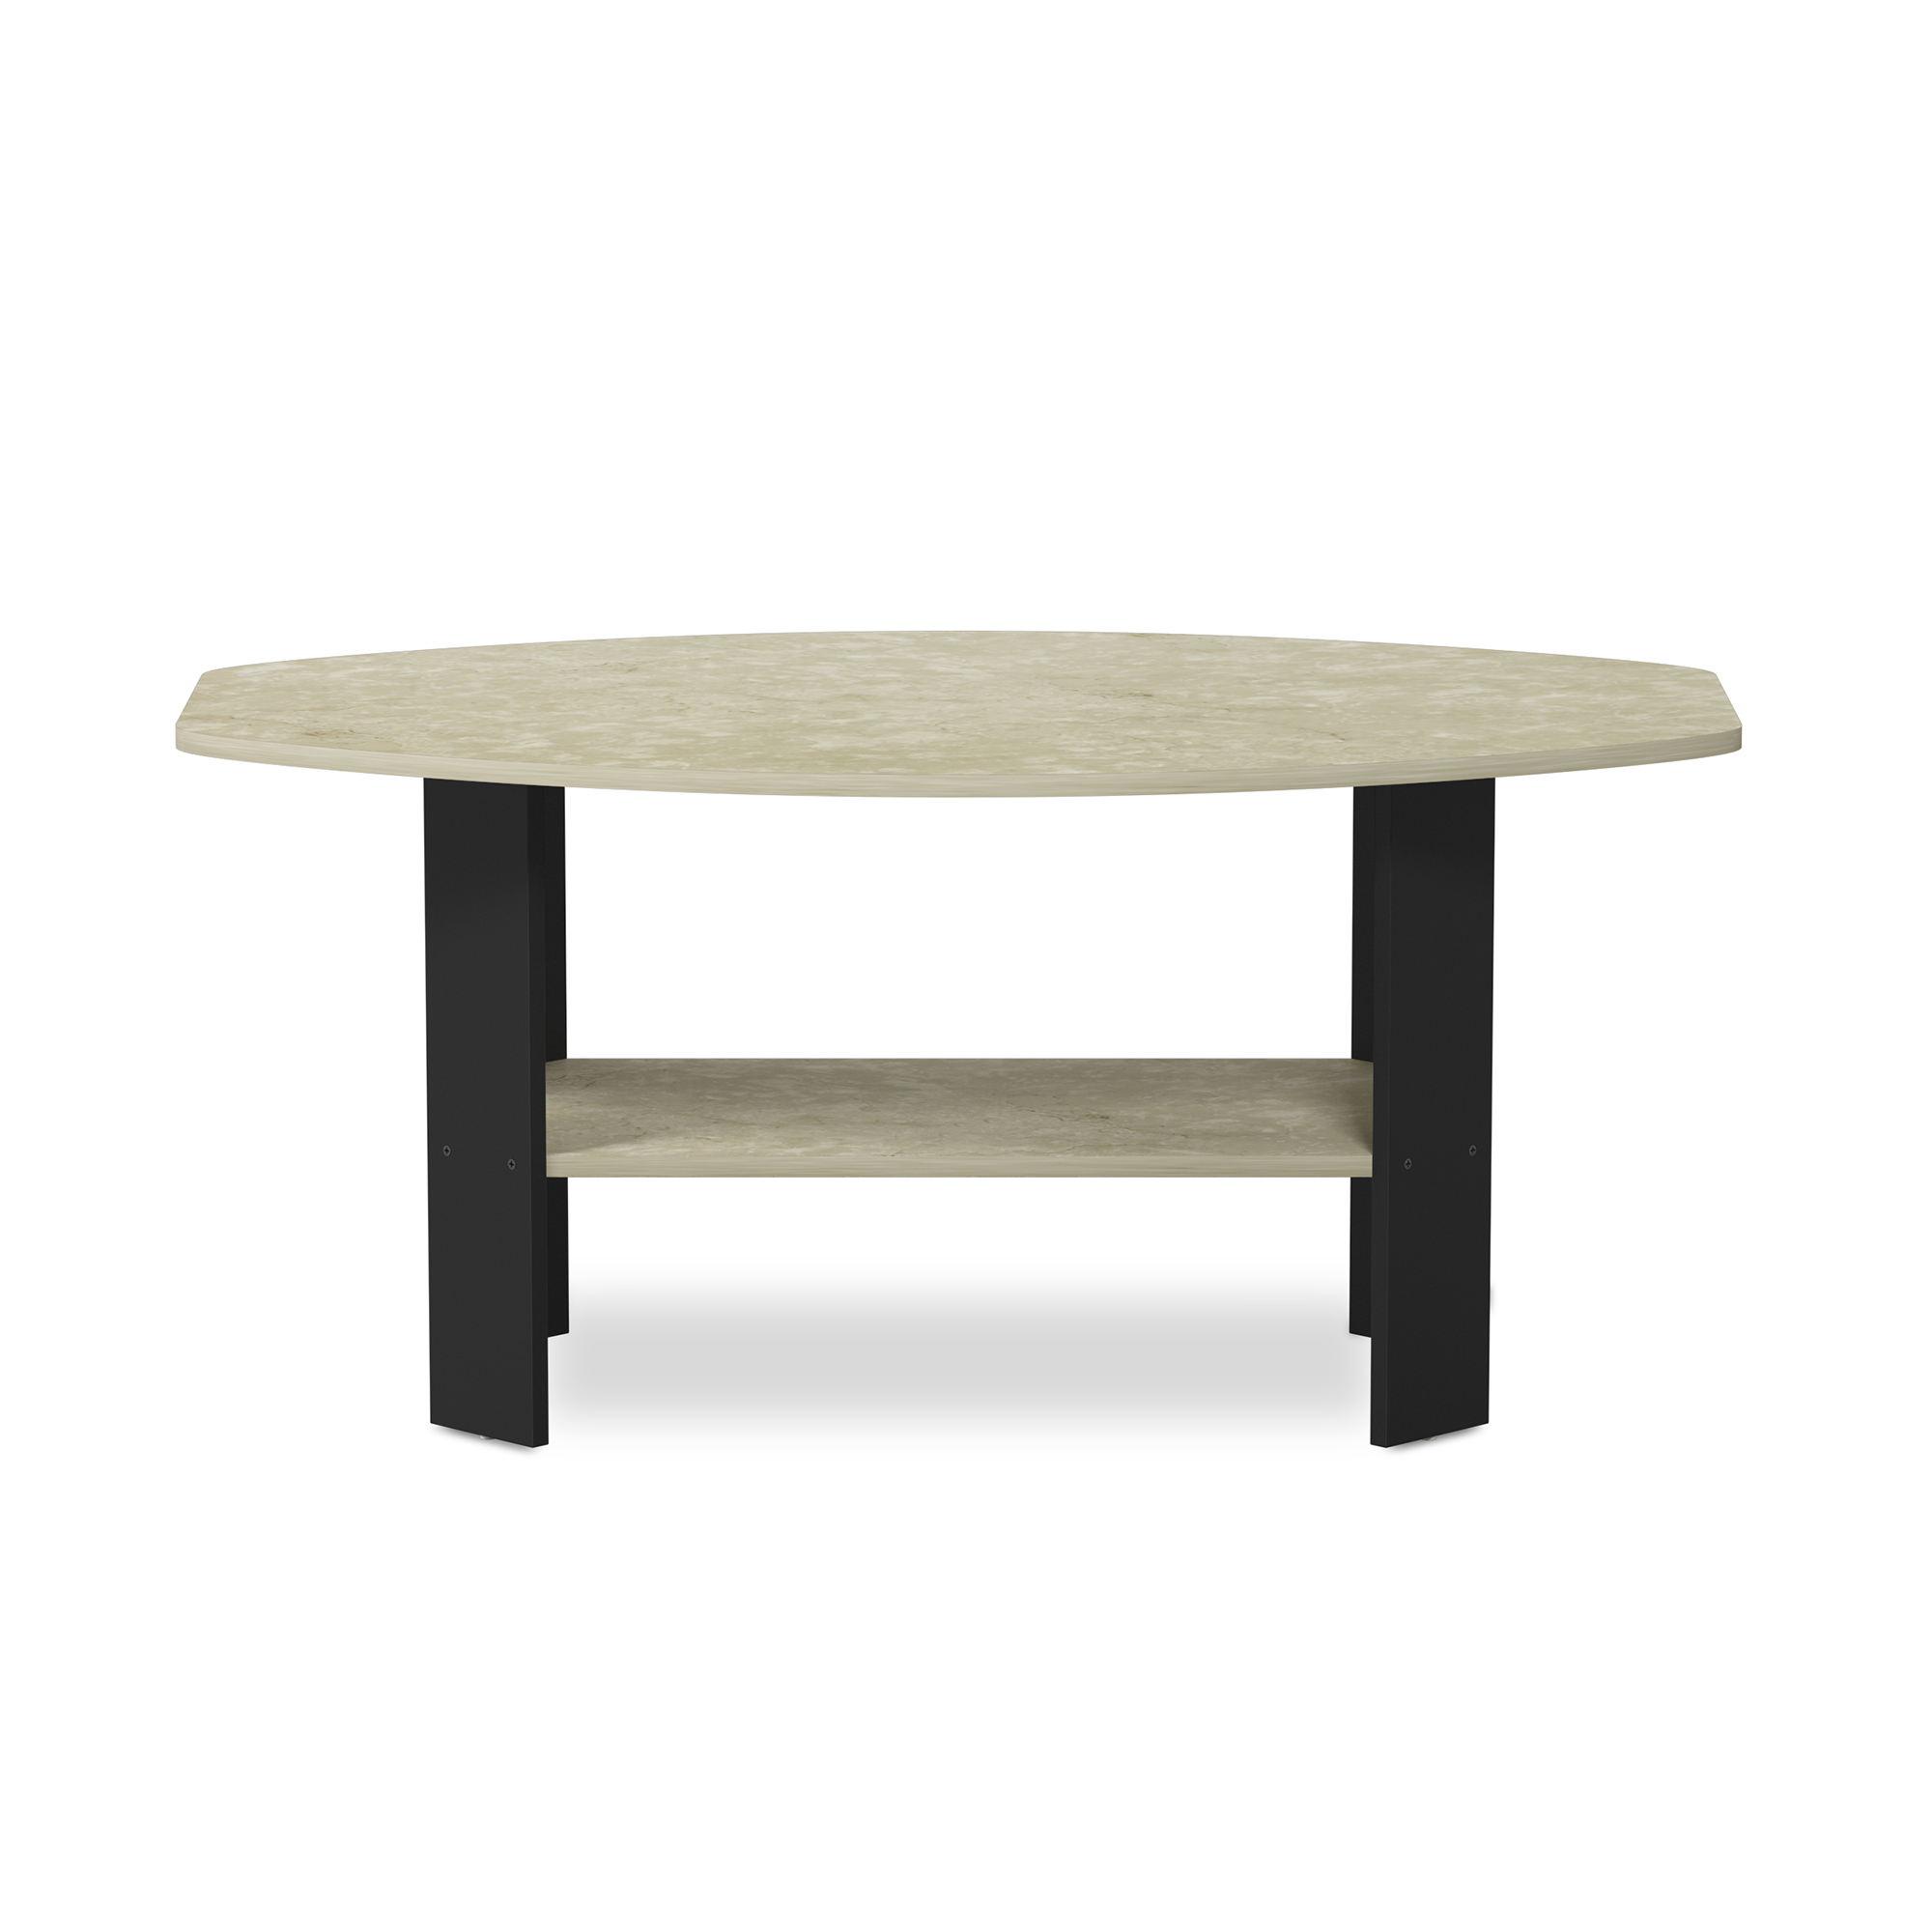 11179 simple design coffee table cream marble black